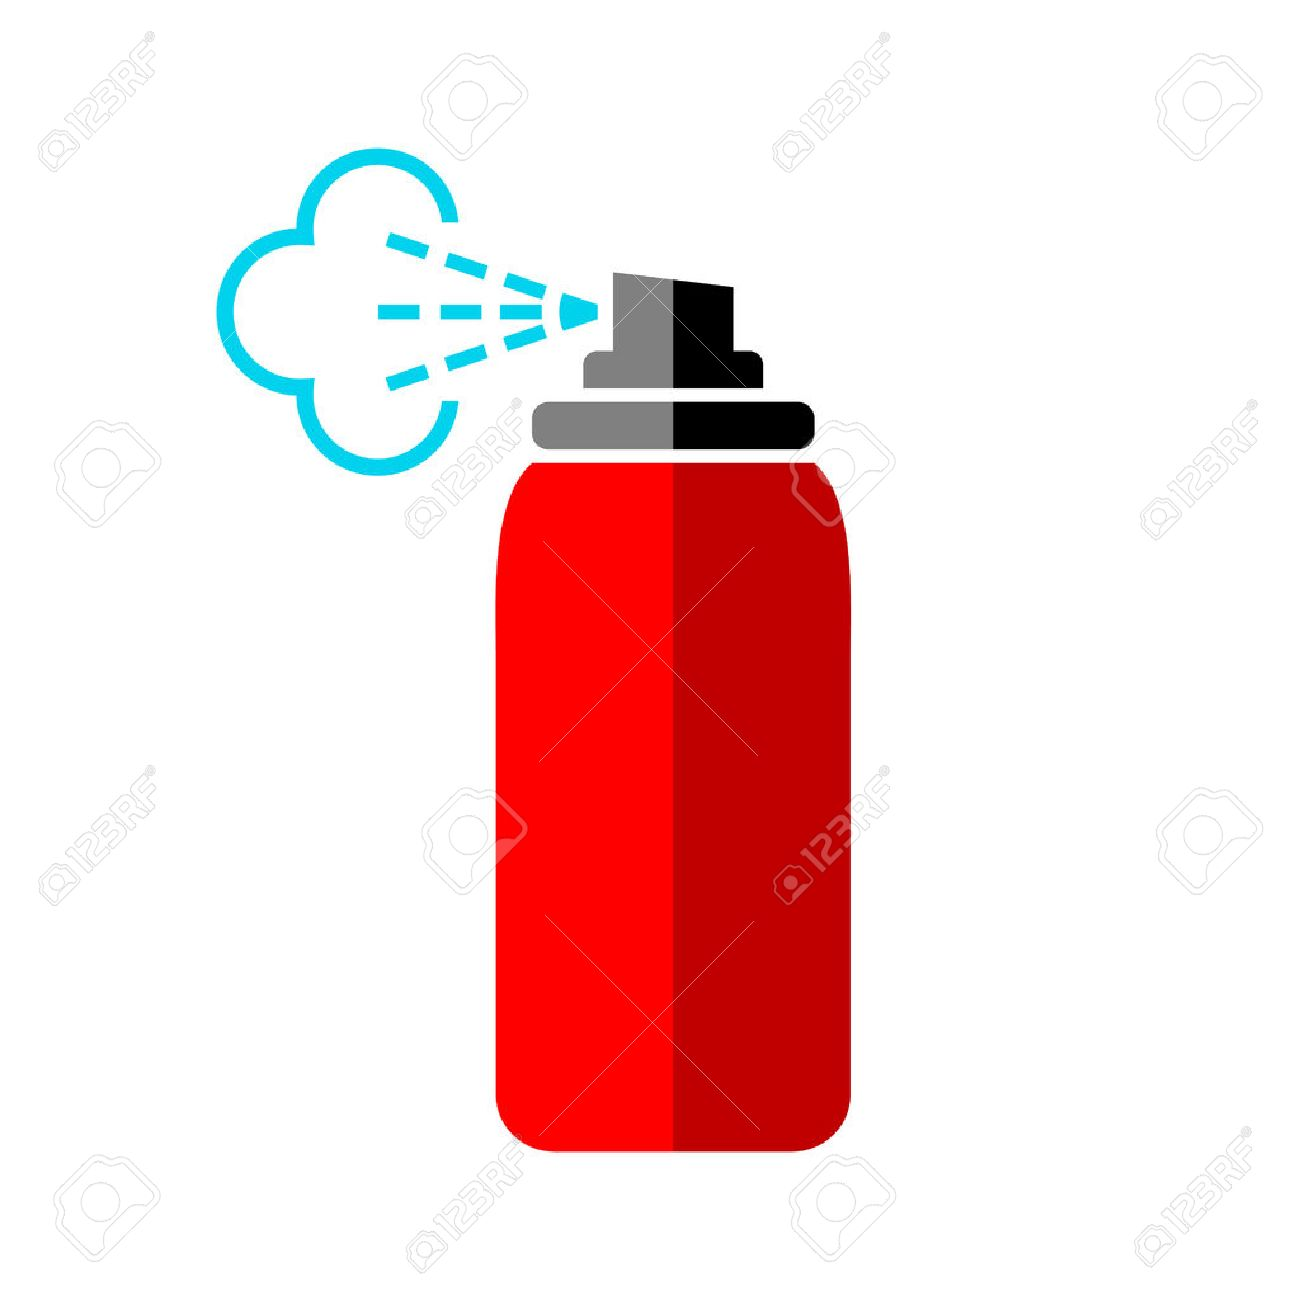 Red spray can icon on white background - 53929100